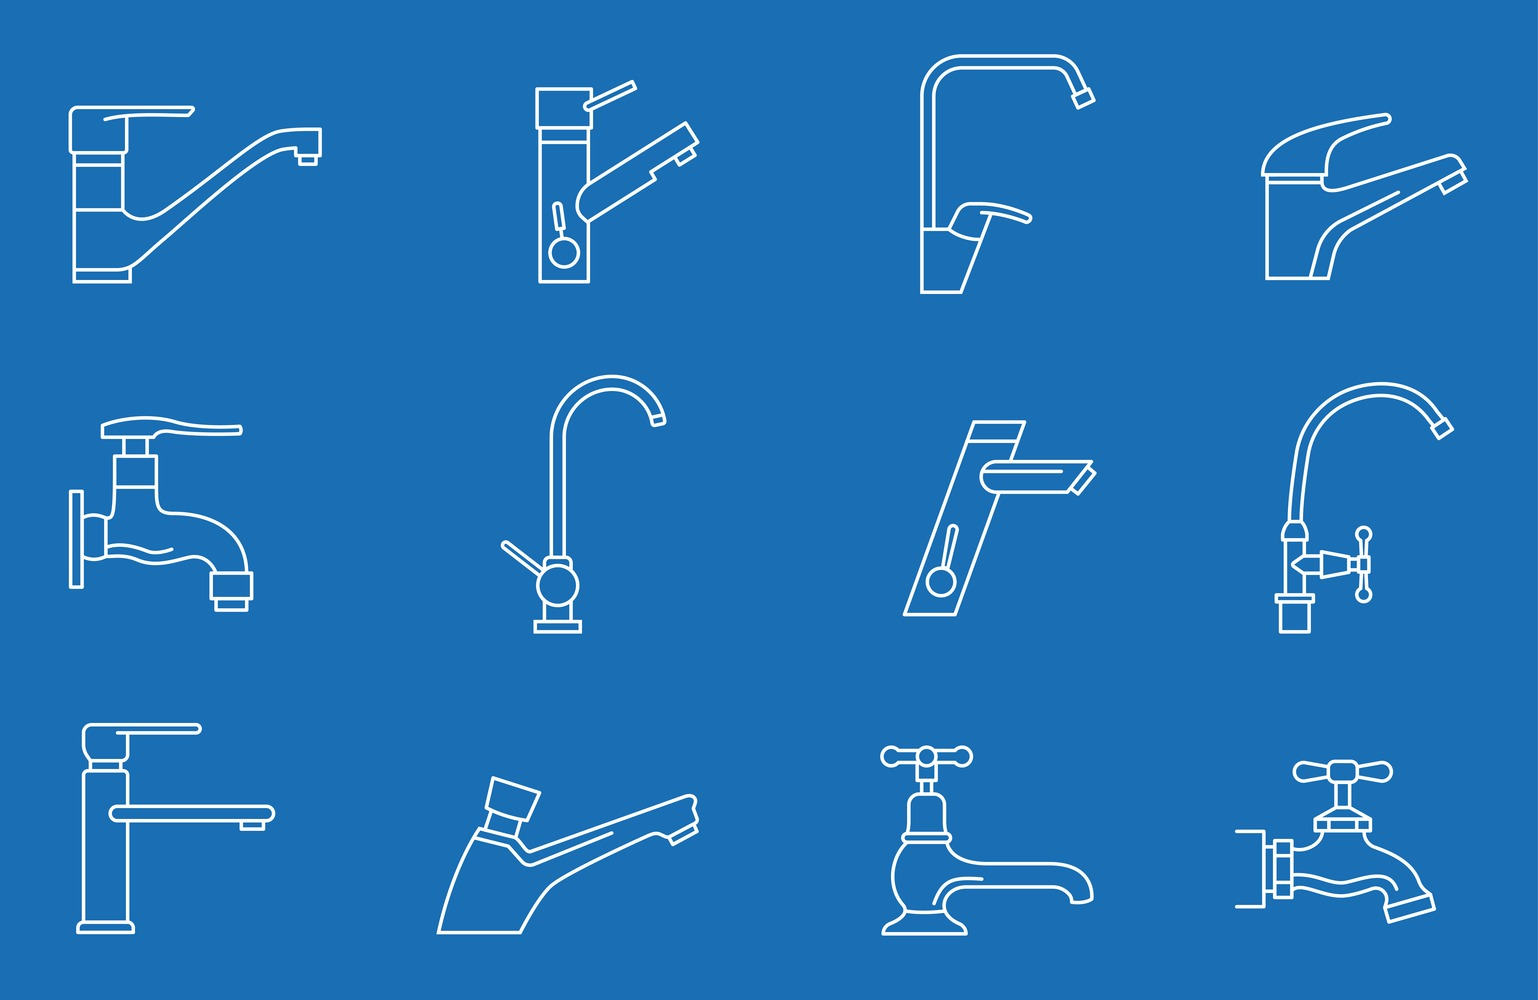 Basic guide: How to choose a kitchen or bathroom tap?